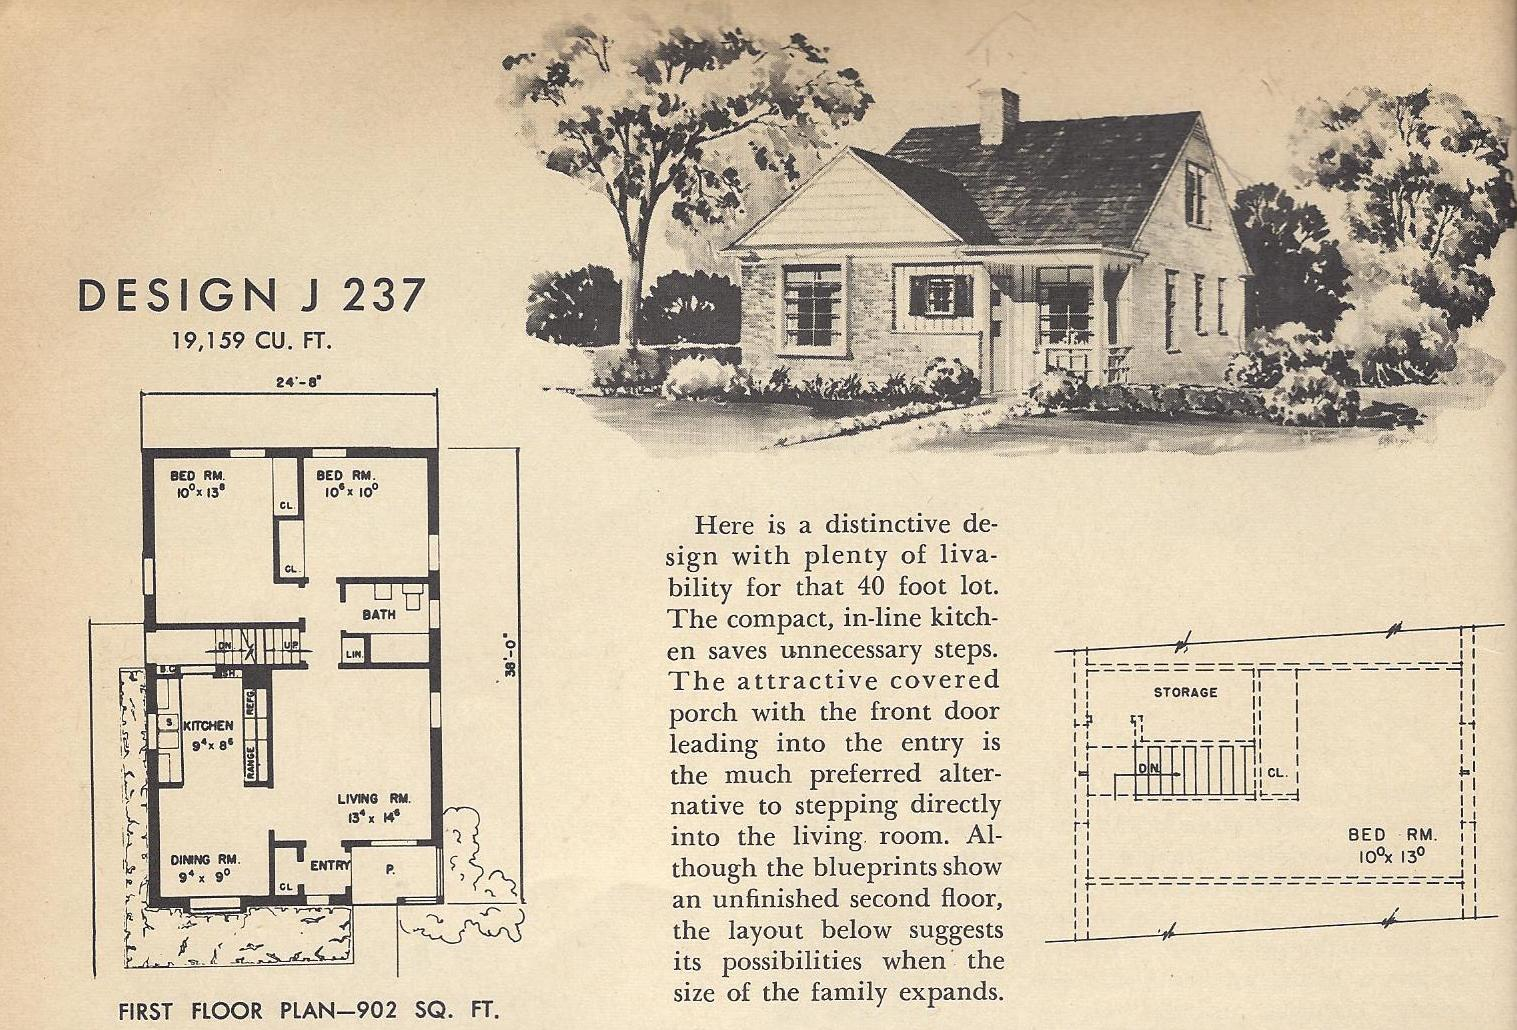 Vintage house plans j237 antique alter ego for Vintage home plans